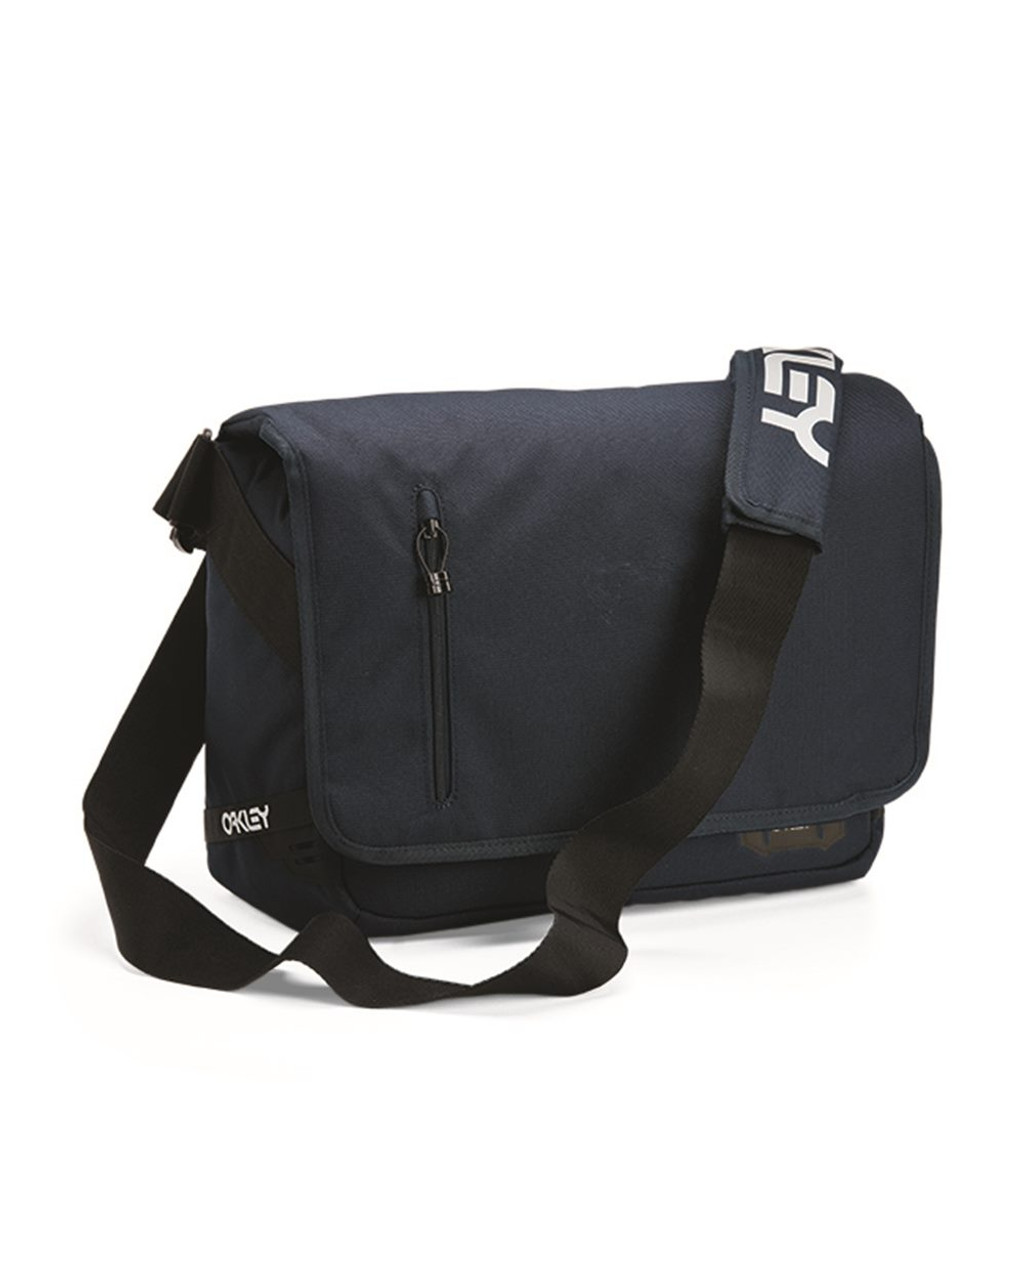 921452ODM Oakley 15L Street Messenger Bag | T-shirt.ca